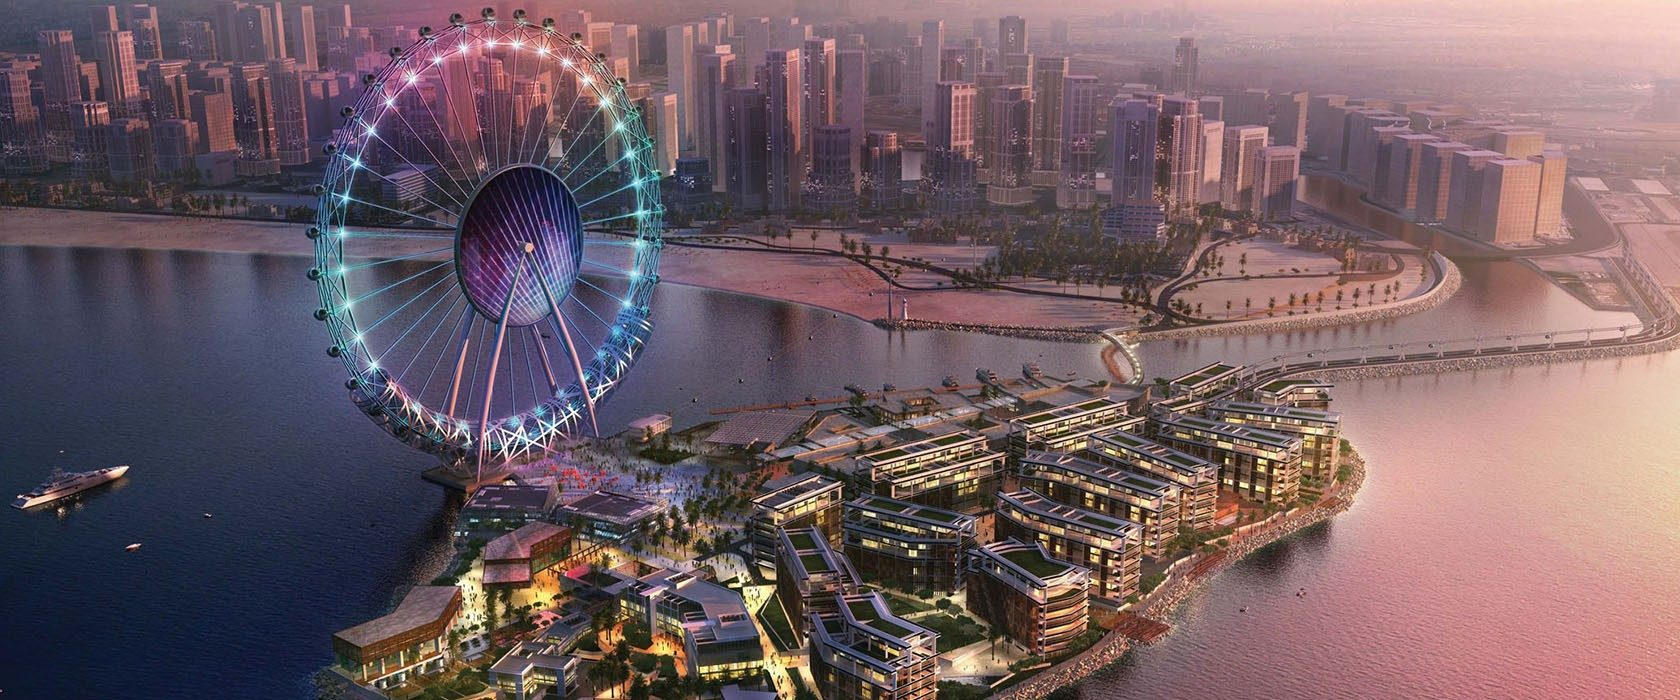 The Ain Dubai, the largest Ferris wheel in the world (opening 2021)